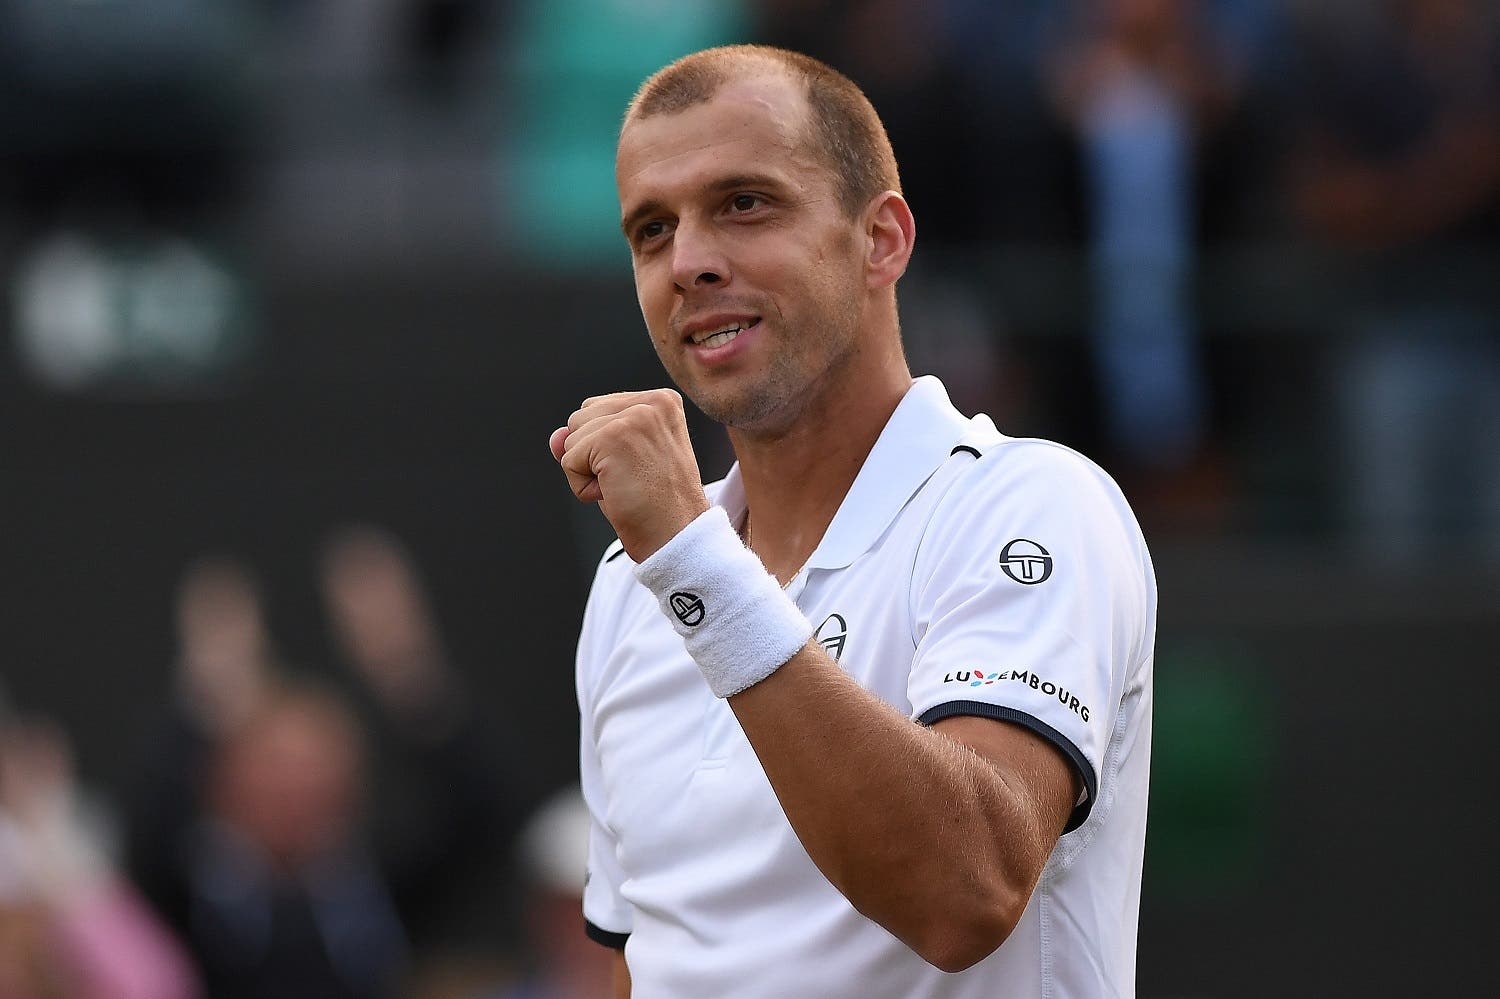 Luxembourg's Gilles Muller reacts after winning against Spain's Rafael Nadal during their men's singles fourth round match on the seventh day of the 2017 Wimbledon Championships at The All England Lawn Tennis Club in Wimbledon, southwest London, on July 10, 2017. Muller won the match 6-3, 6-4, 3-6, 4-6, 15-13. (AFP)